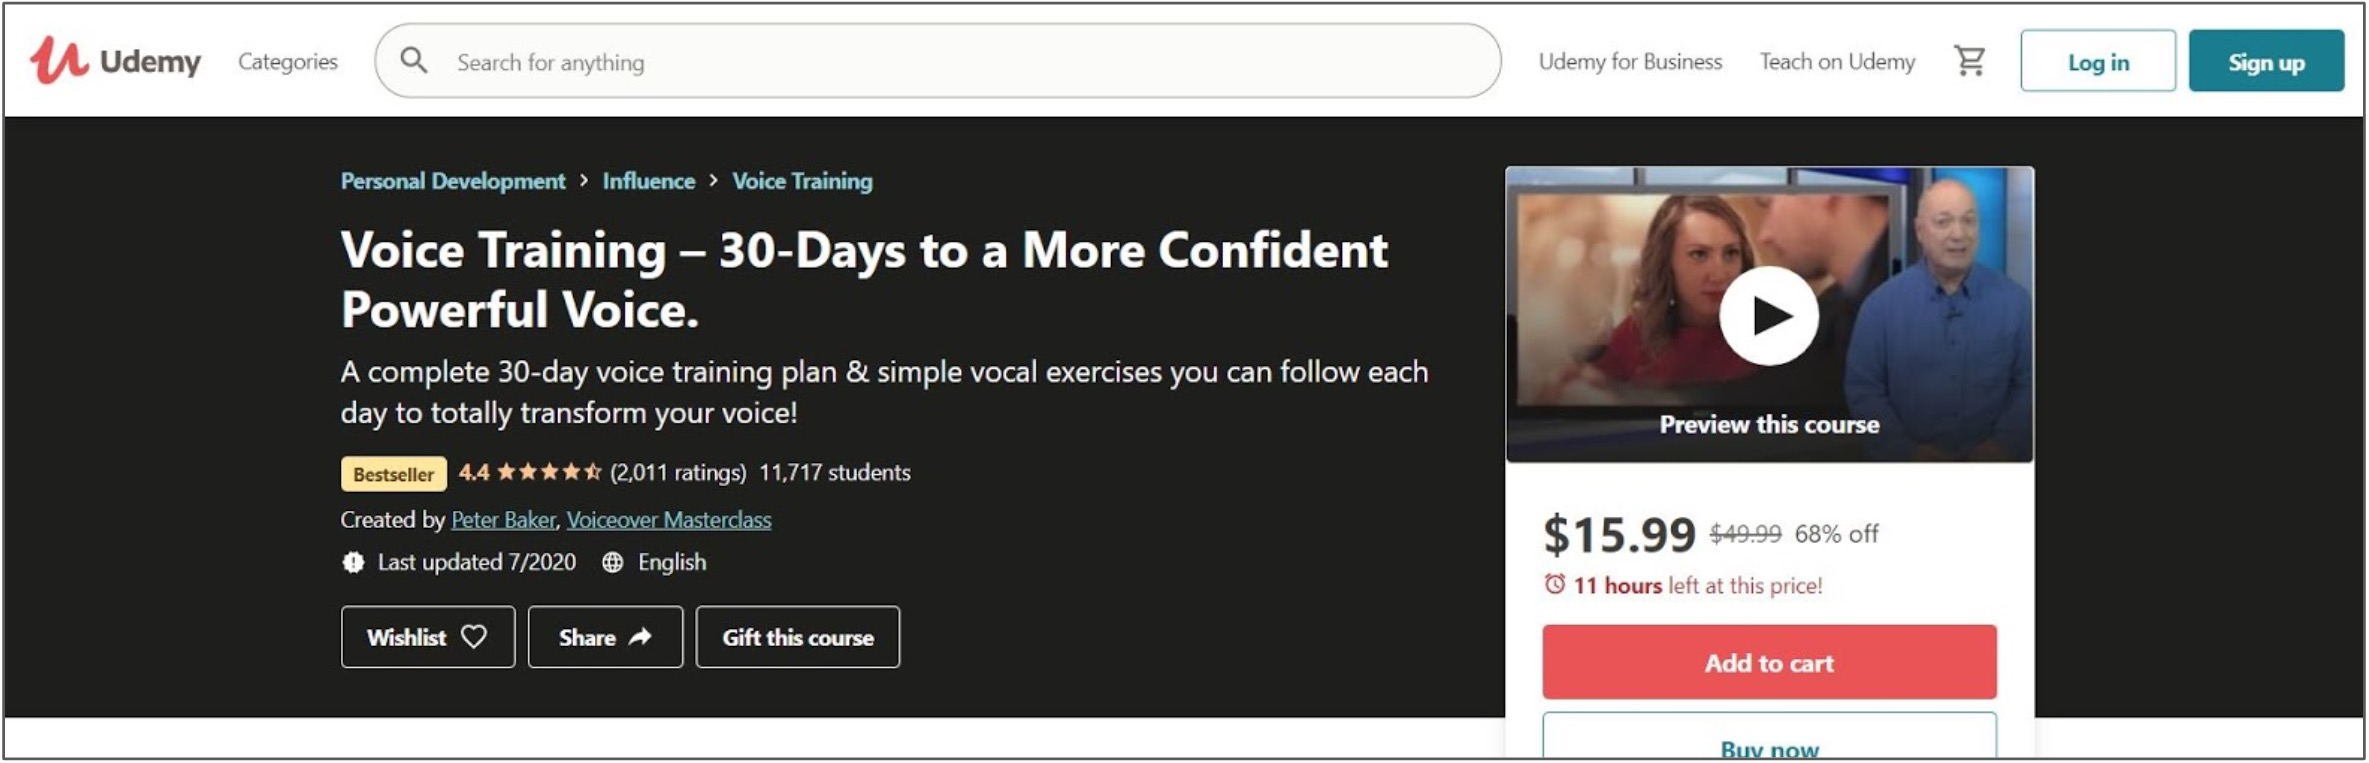 Screenshot of a Voice Training course on Udemy